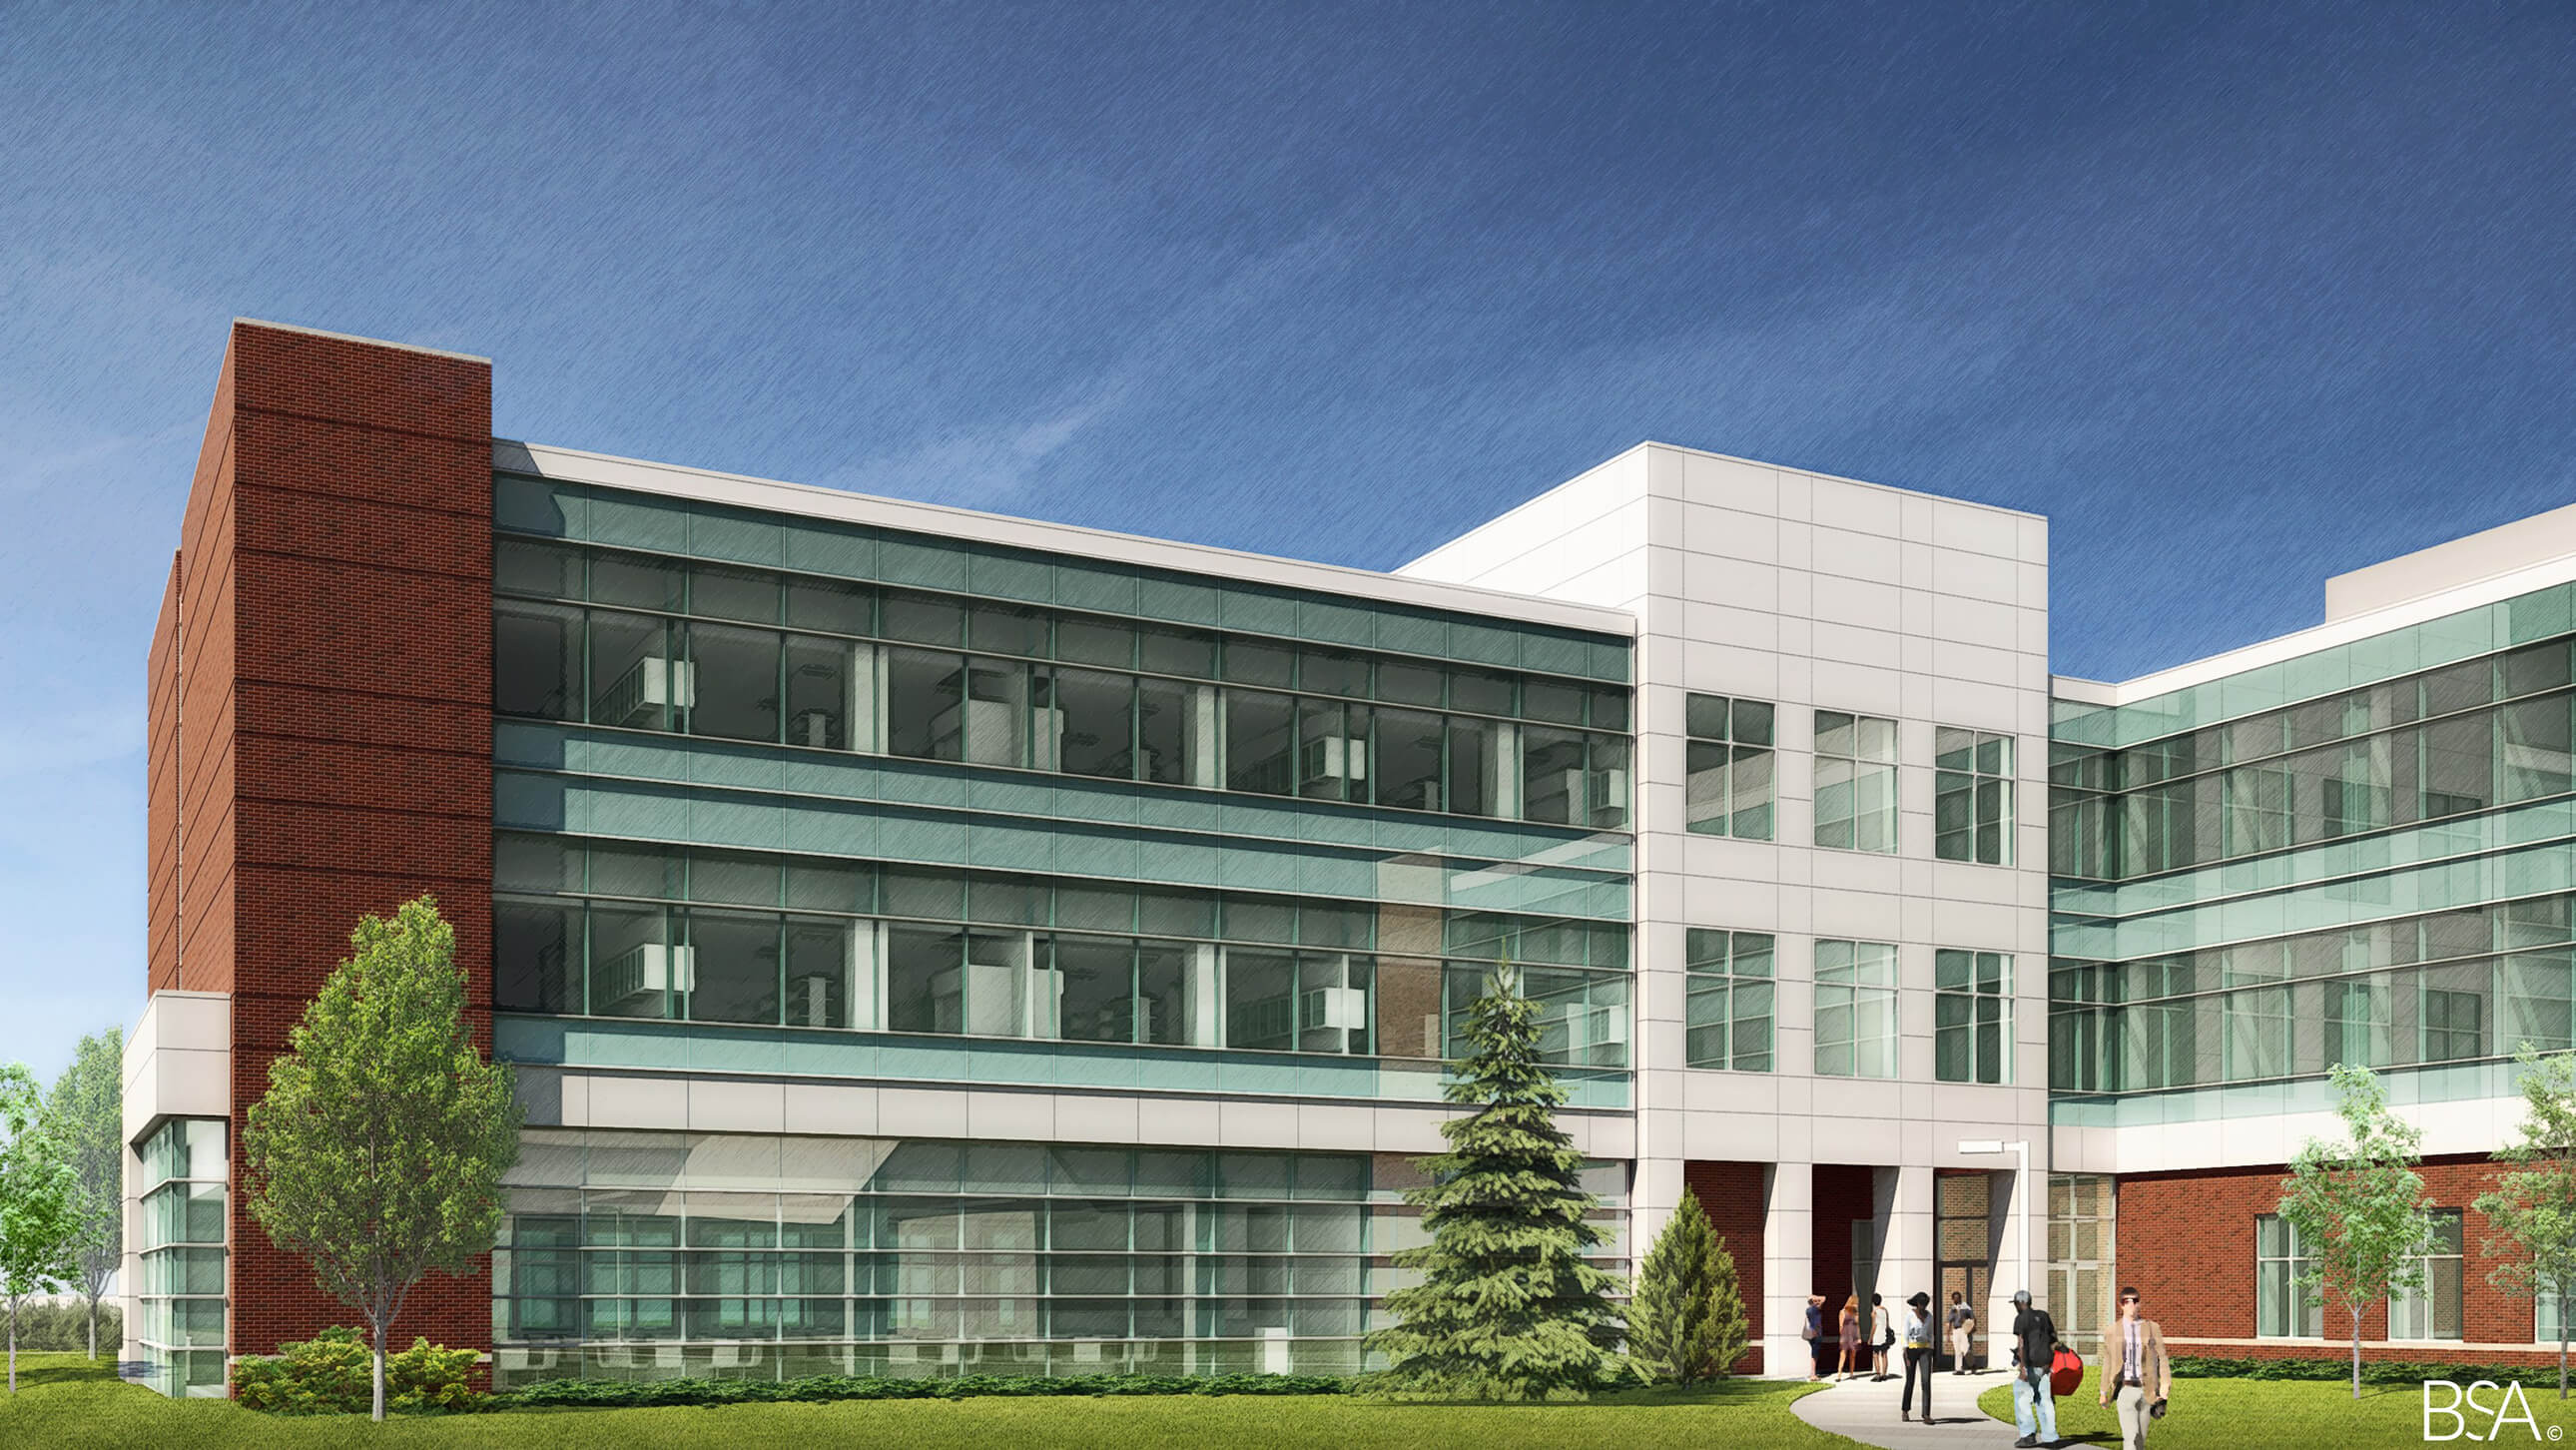 Construction Engineering Building And Construction Begins For Weldon School Of Biomedical Engineering